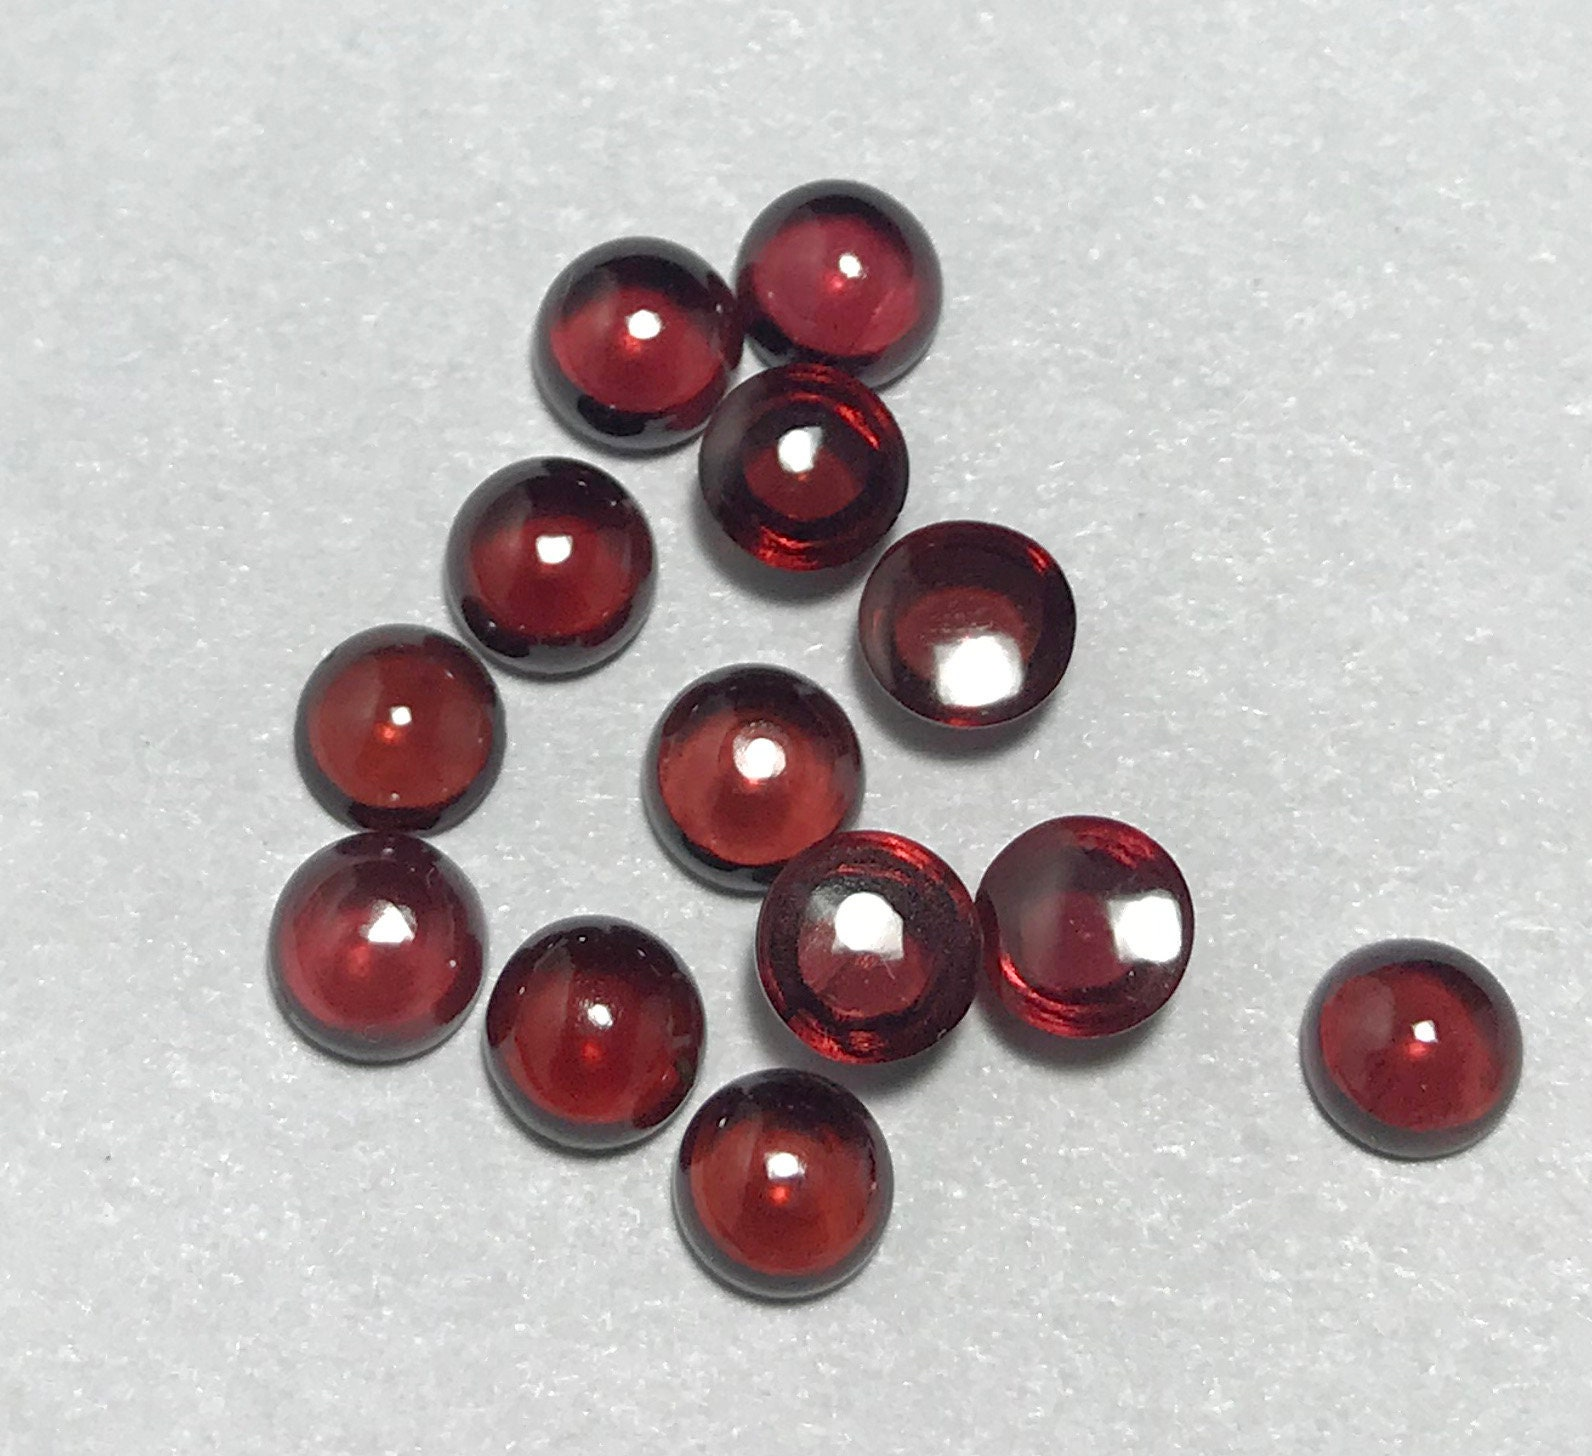 10 pièces 8mm grenat Cabochon rond   AAA grenat Mozambique rouge grenat AAA 8mm ronde taxis   Cabochon 8mm   Grenat ronde taxis   Cabochon grenat rouge 6eb9e5